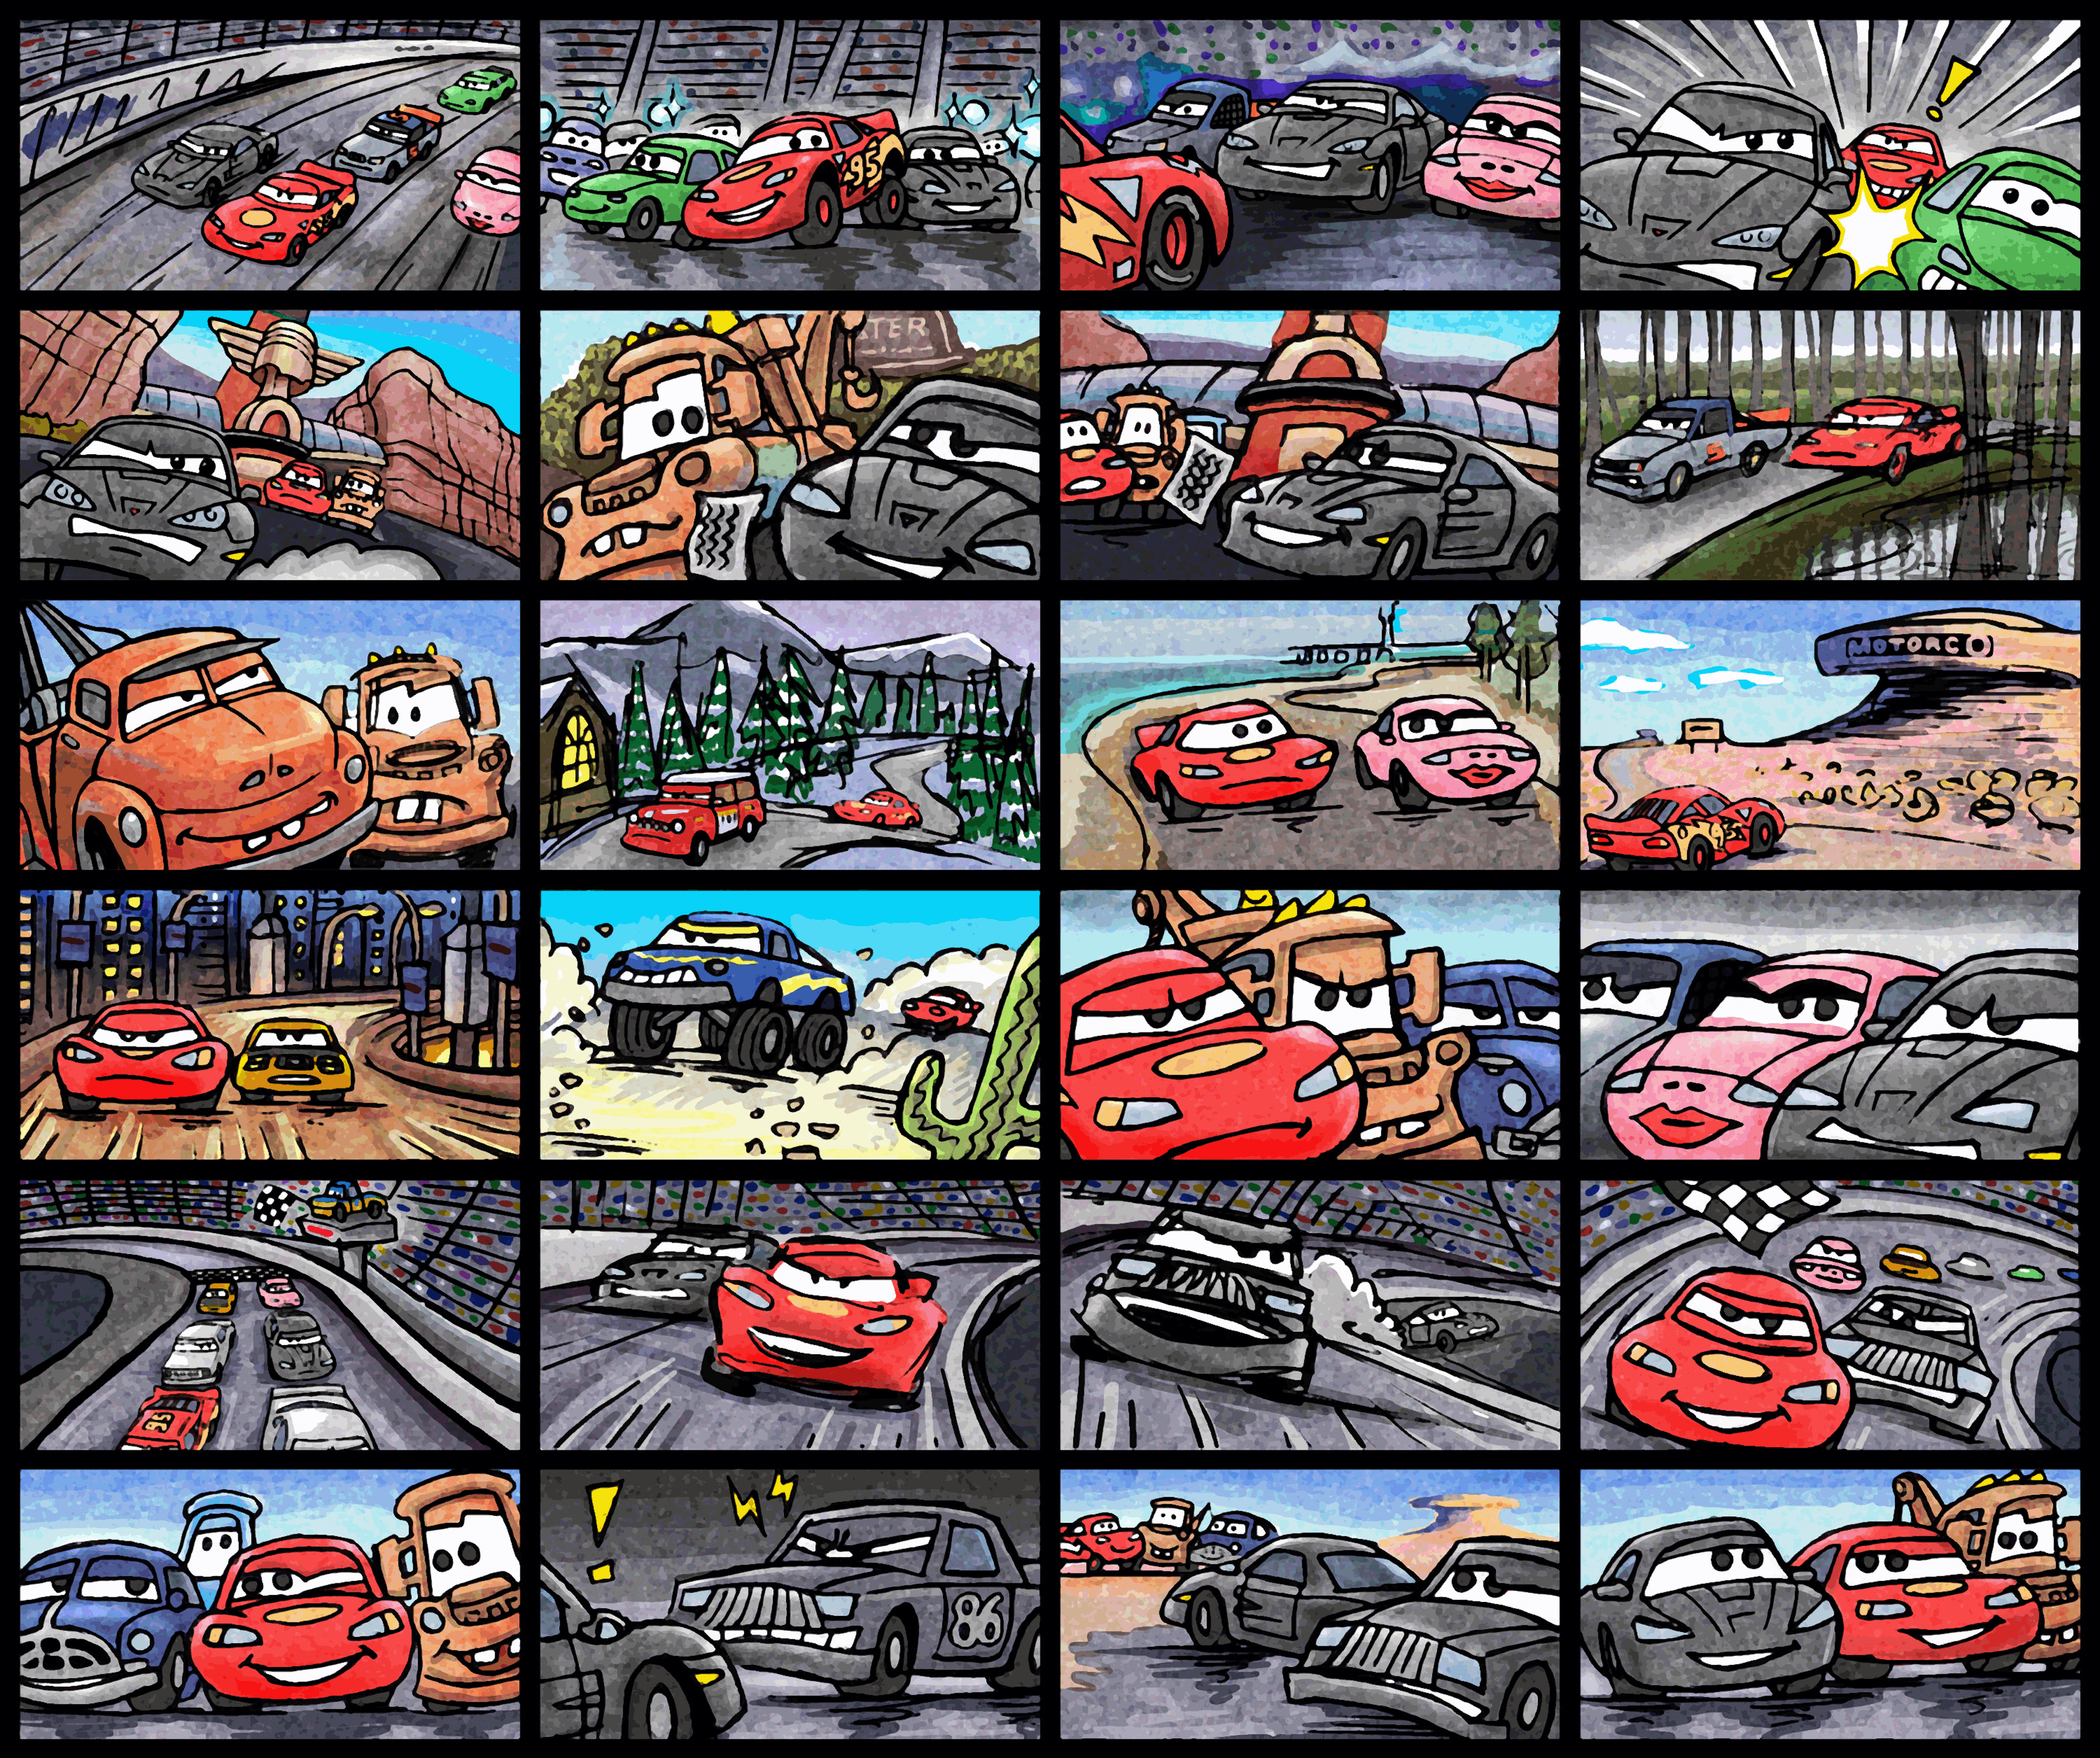 (2009) Storyboard - Cars: Race-O-Rama I